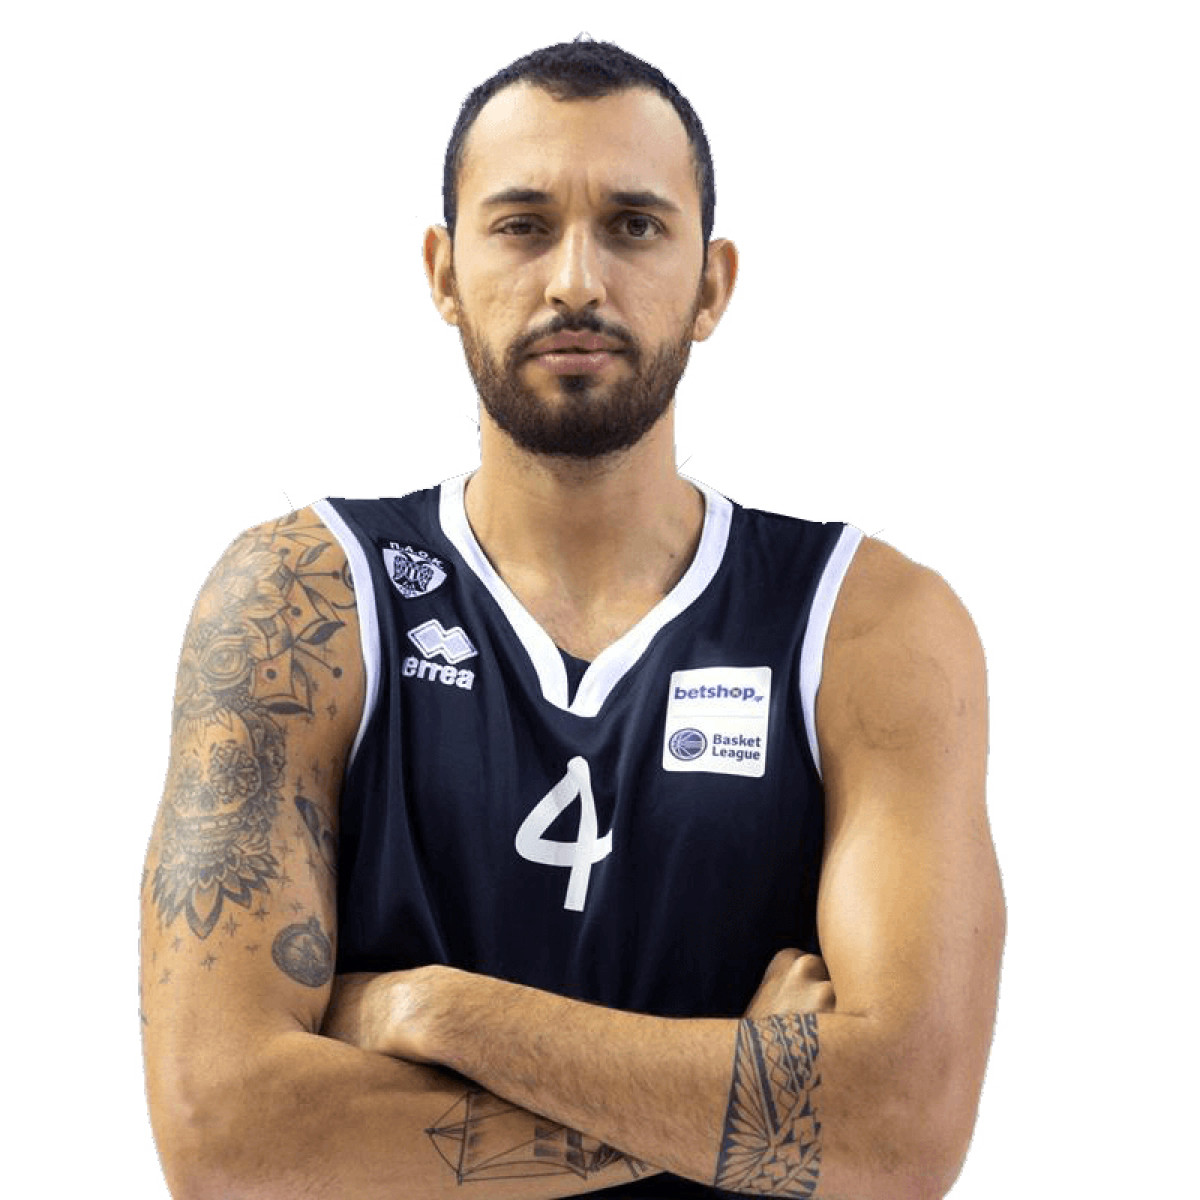 Photo of Linos Chrysikopoulos, 2018-2019 season